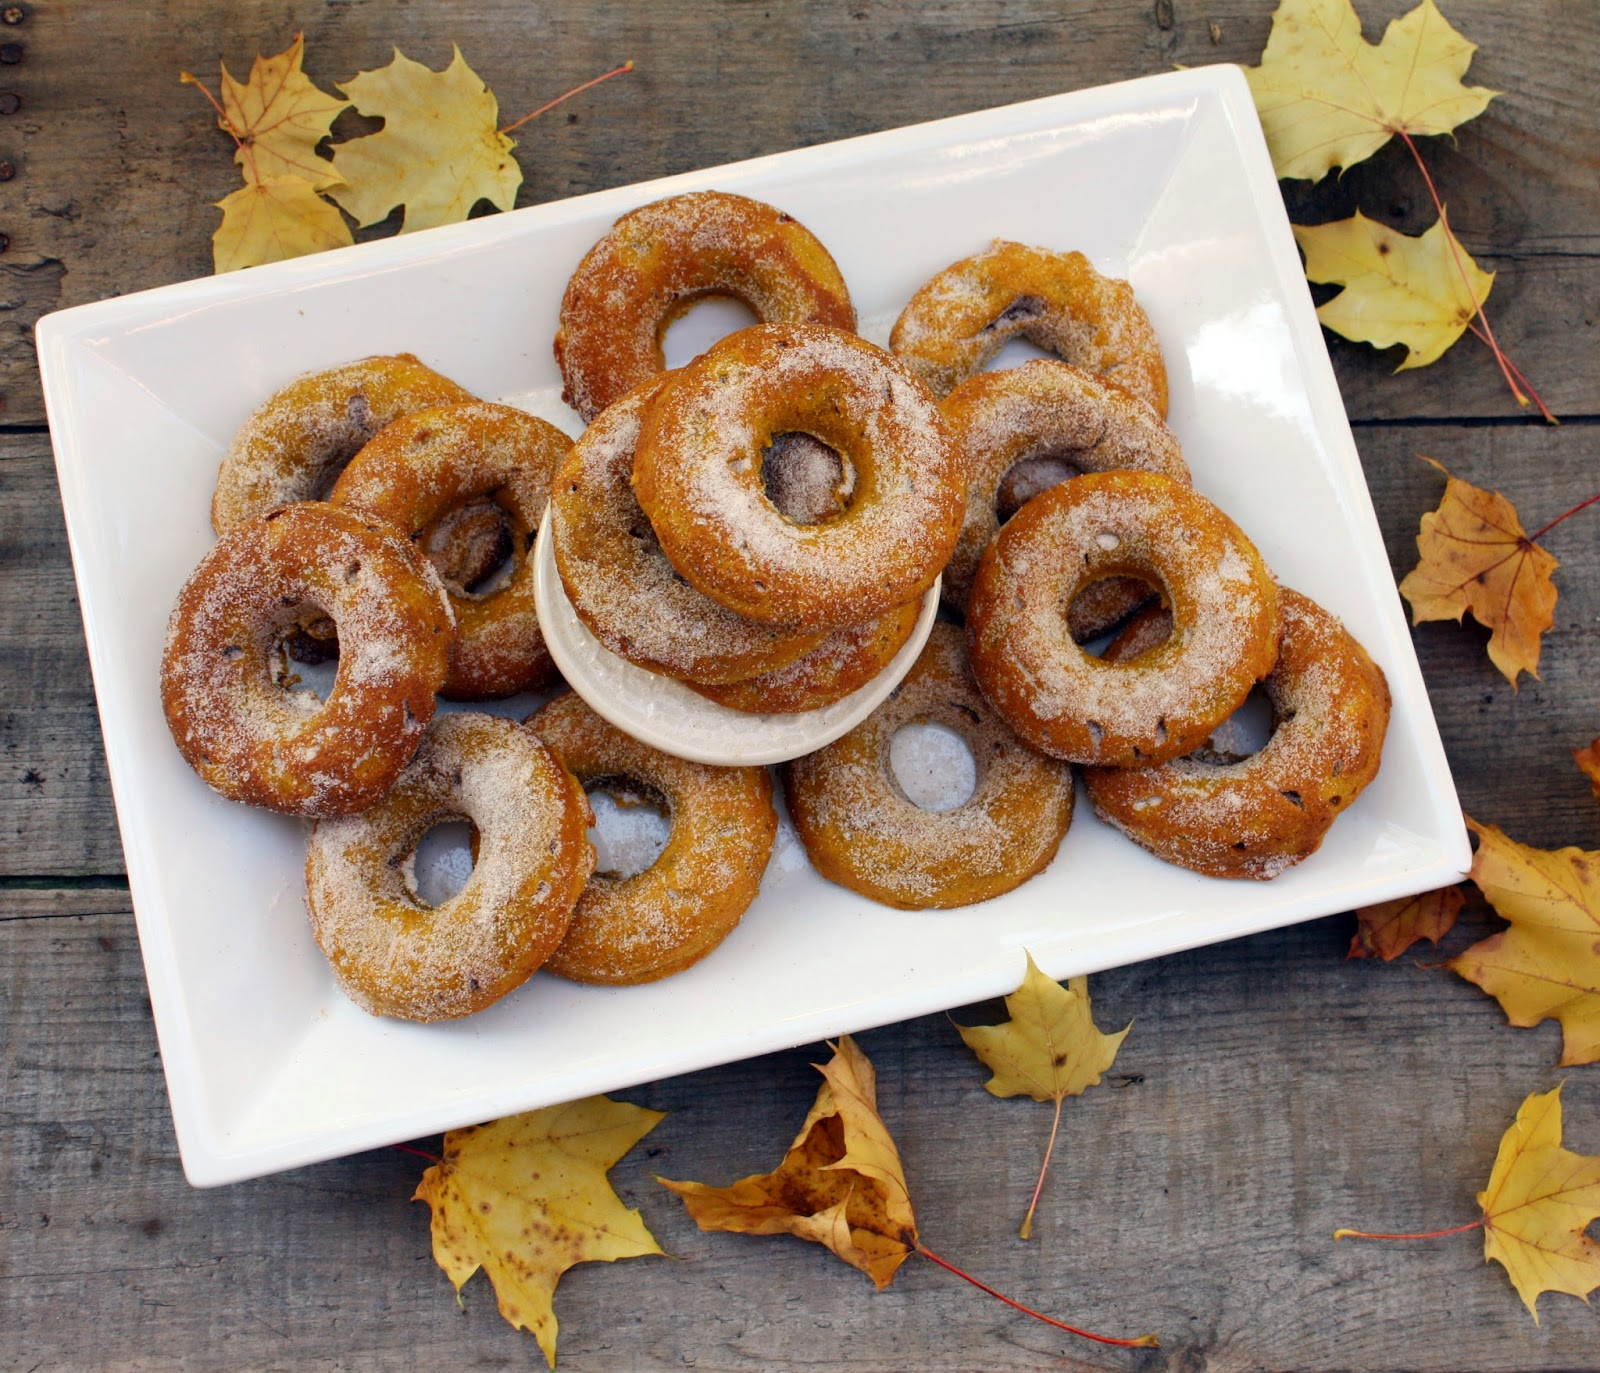 Pumpkin spice doughnuts with cinnamon sugar